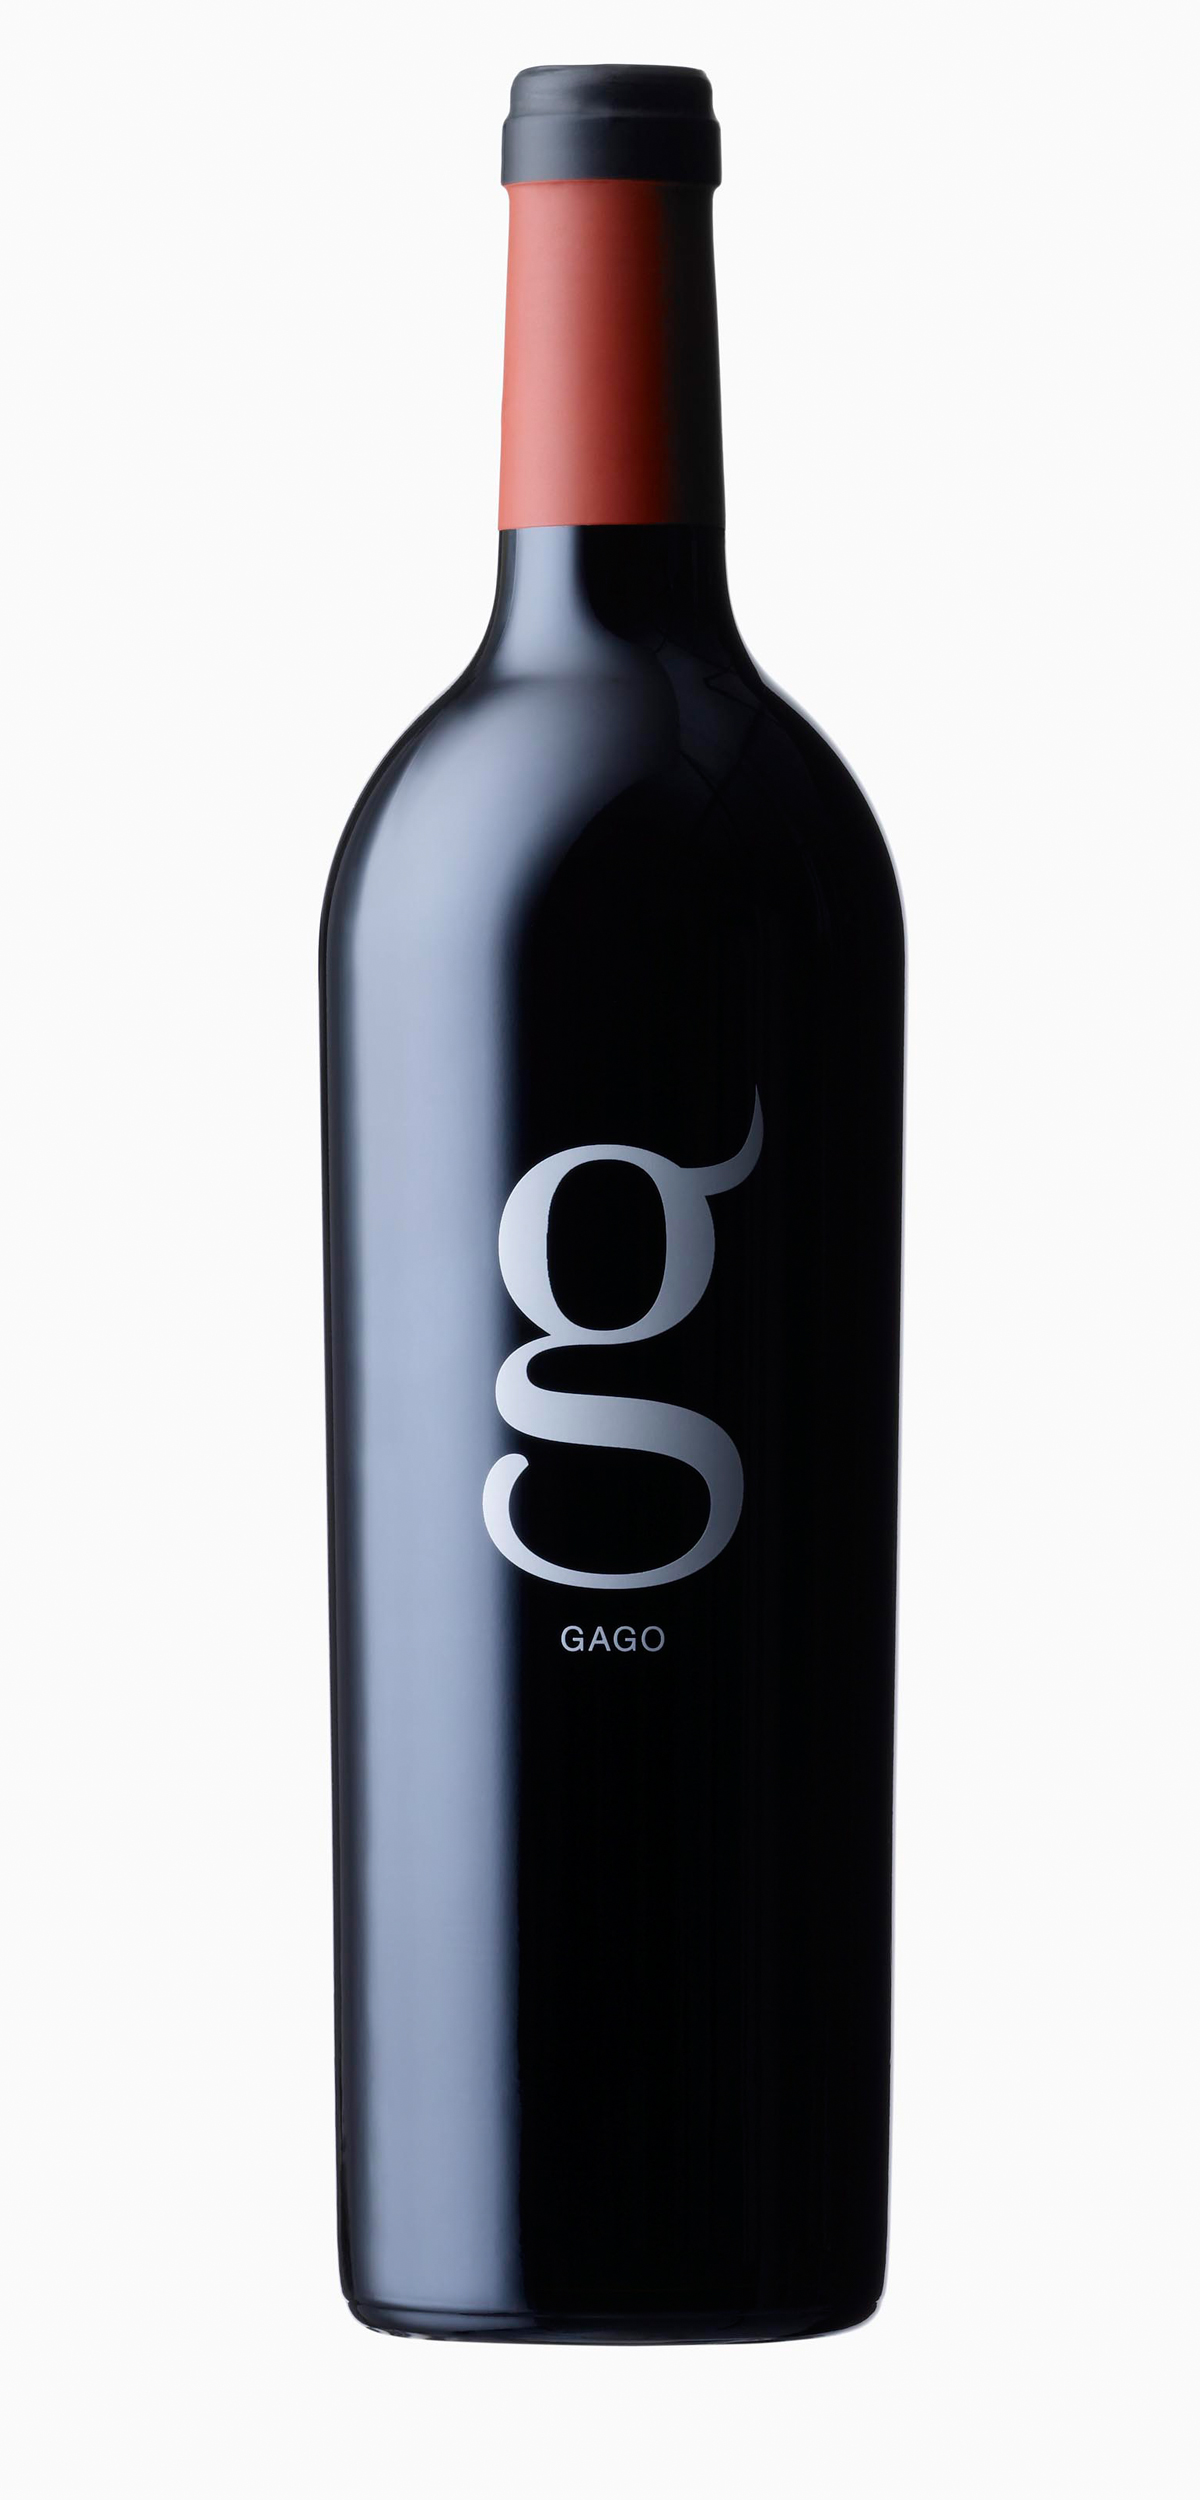 Gago wine bottle design